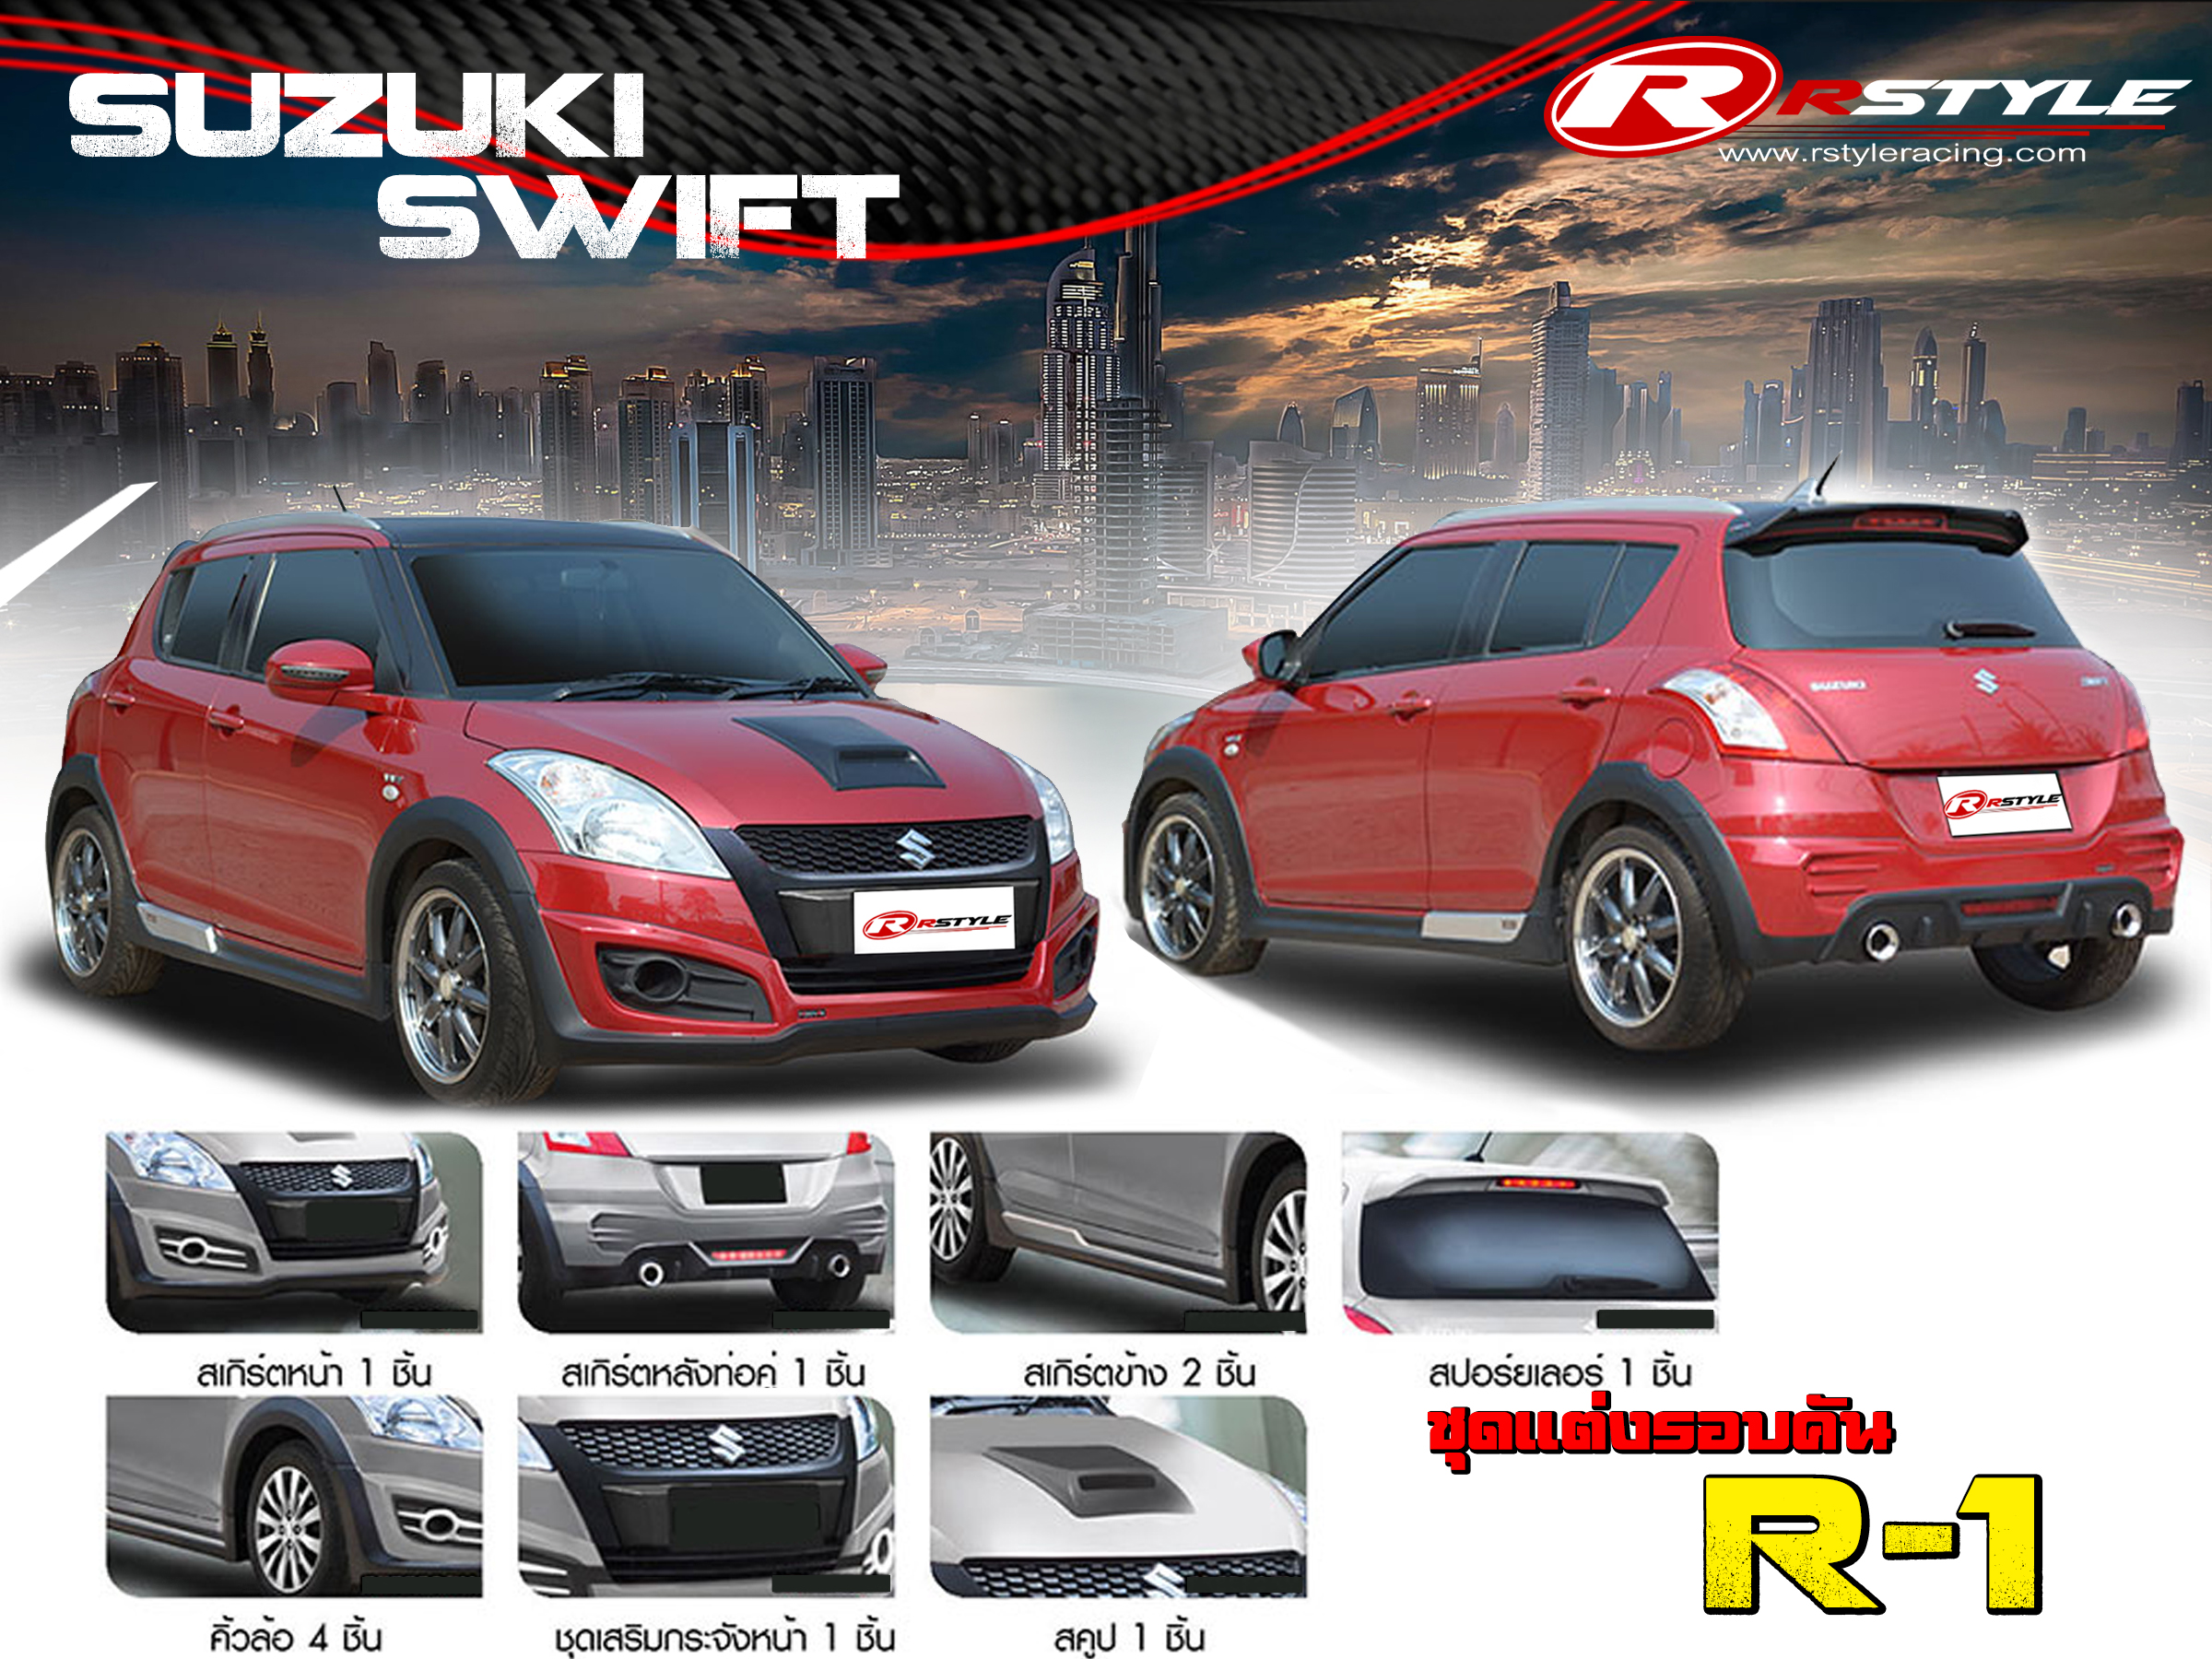 Body Kit R 1 Style For Suzuki Swift Rstyle Racing